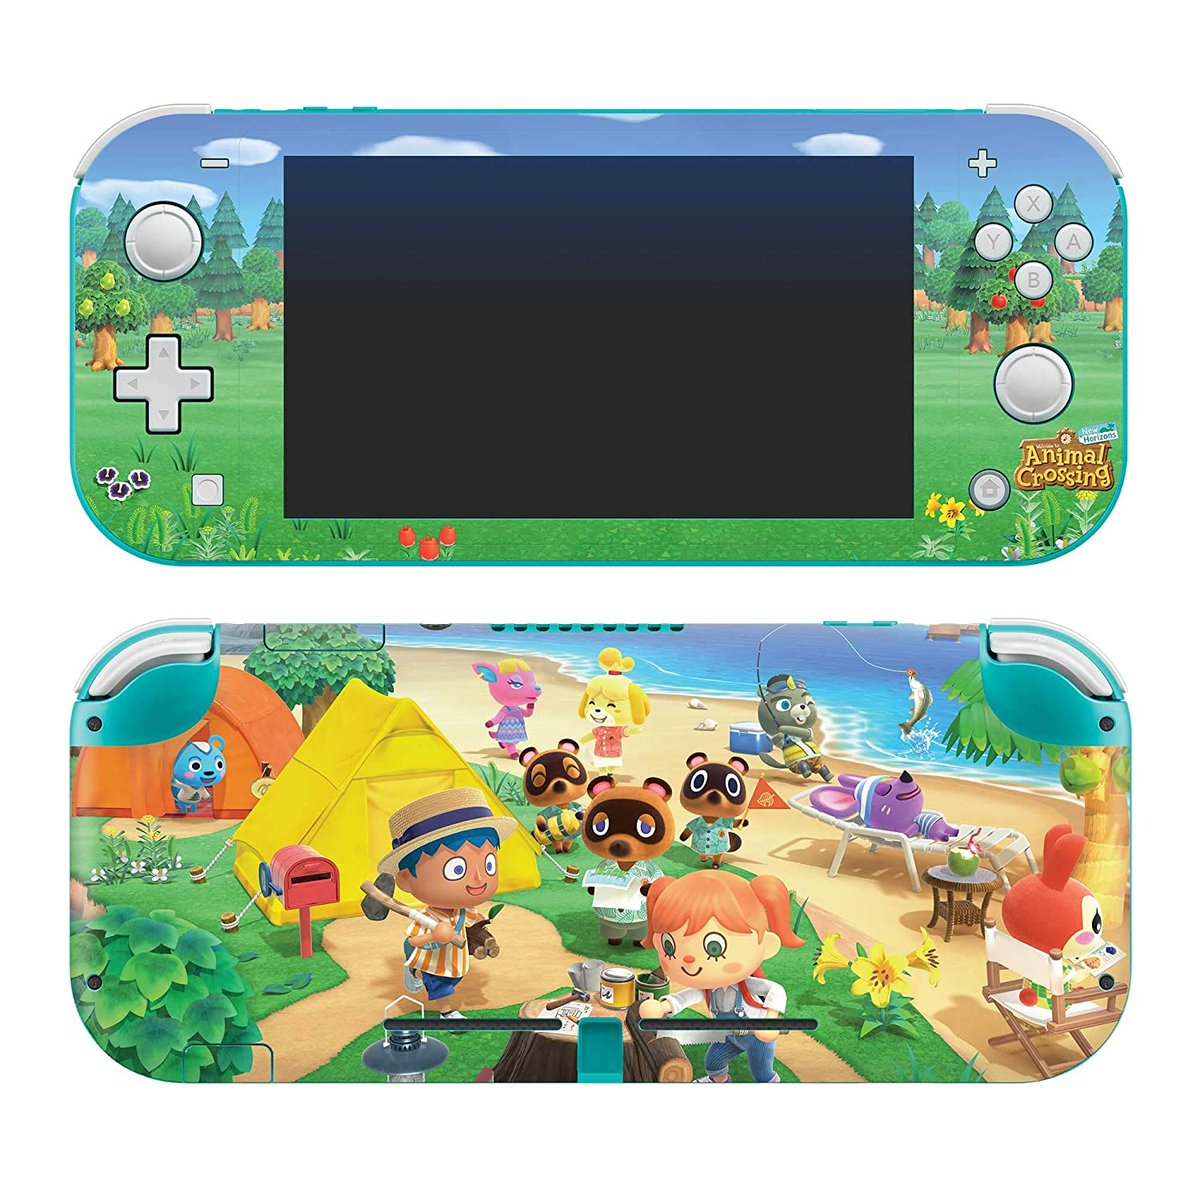 Nintendo Wire V Twitter The Animal Crossing New Horizons On